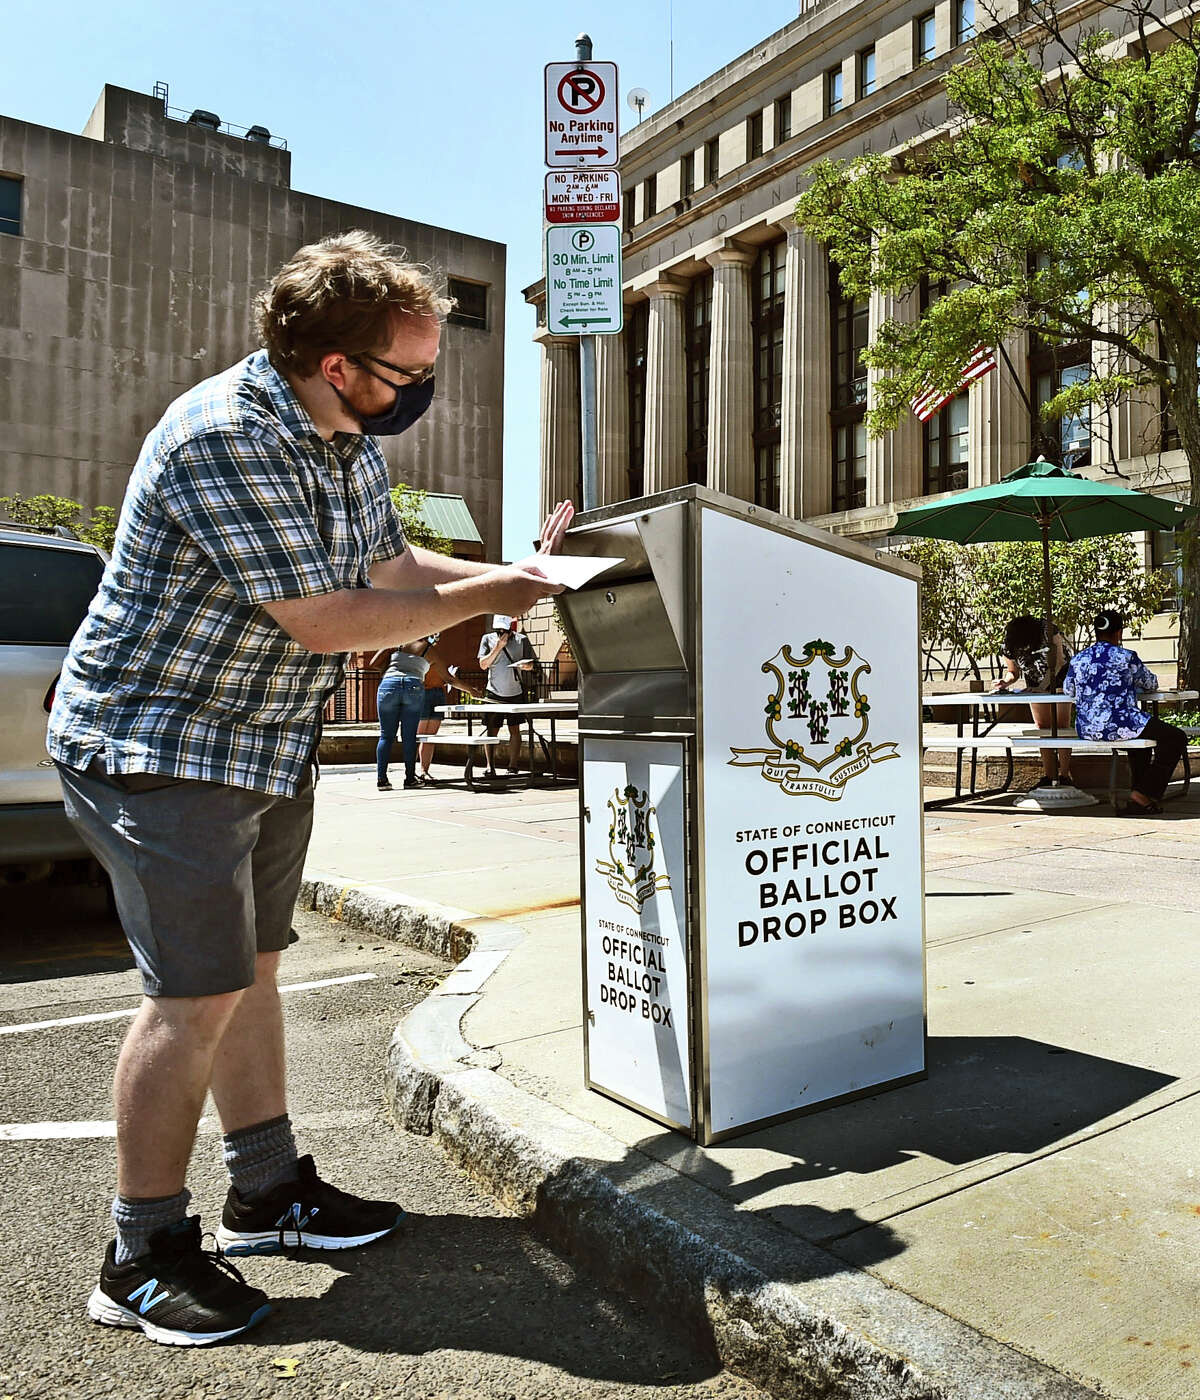 New Haven, Connecticut - Monday, August 10, 2020: Edward Dumar drops his absentee ballot vote Monday into the Official Ballot Drop Box in front of the Hall of Records at 200 Orange St. in New Haven. The New Haven City Clerk's office has set up tables where people can apply for an absentee ballot and then vote by putting it into the drop box. The Hall of Records is still officially closed. Voters have up to 8 p.m. on Tuesday to put the ballot in the drop box.